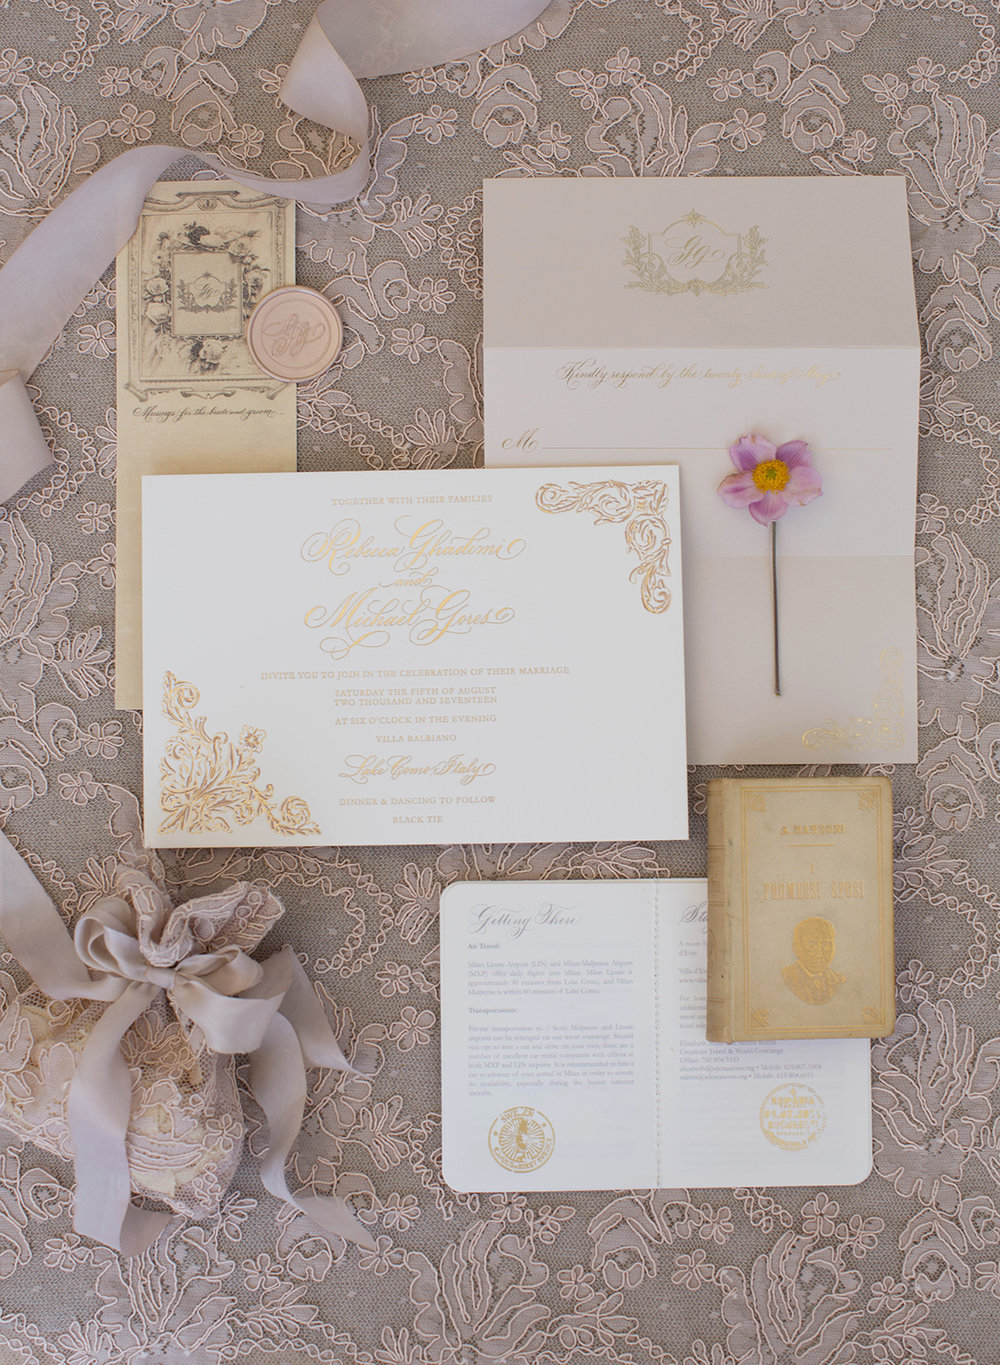 - Guests were seated on draped chairs with sheer fabrics to create a romantic Italian garden ambience. Petals for the flower toss were packaged in beautiful lace crochet bags.  The couple chose a classic muted French hand painted stationery suite.